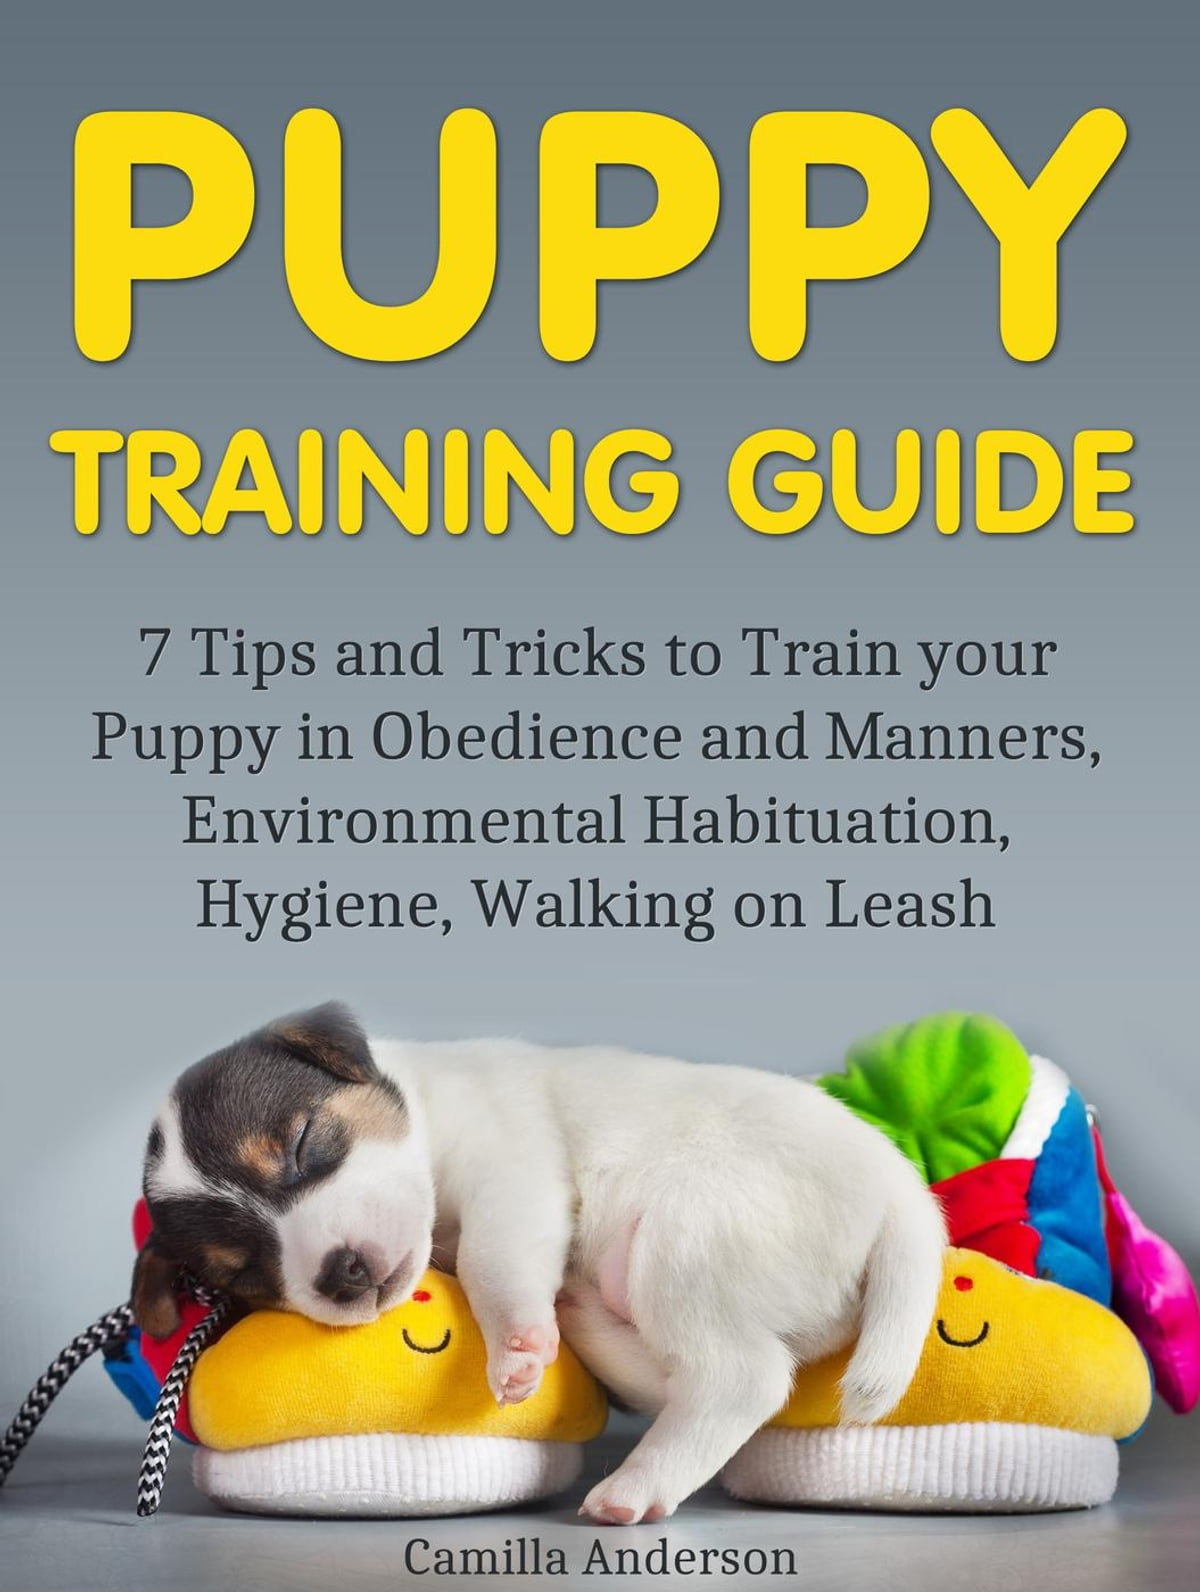 Puppy Training Guide 7 Tips And Tricks To Train Your Puppy In Obedience And Manners Environmental Habituation Hygiene Walking On Leash Ebook By Camilla Anderson 9781386427162 Rakuten Kobo United States